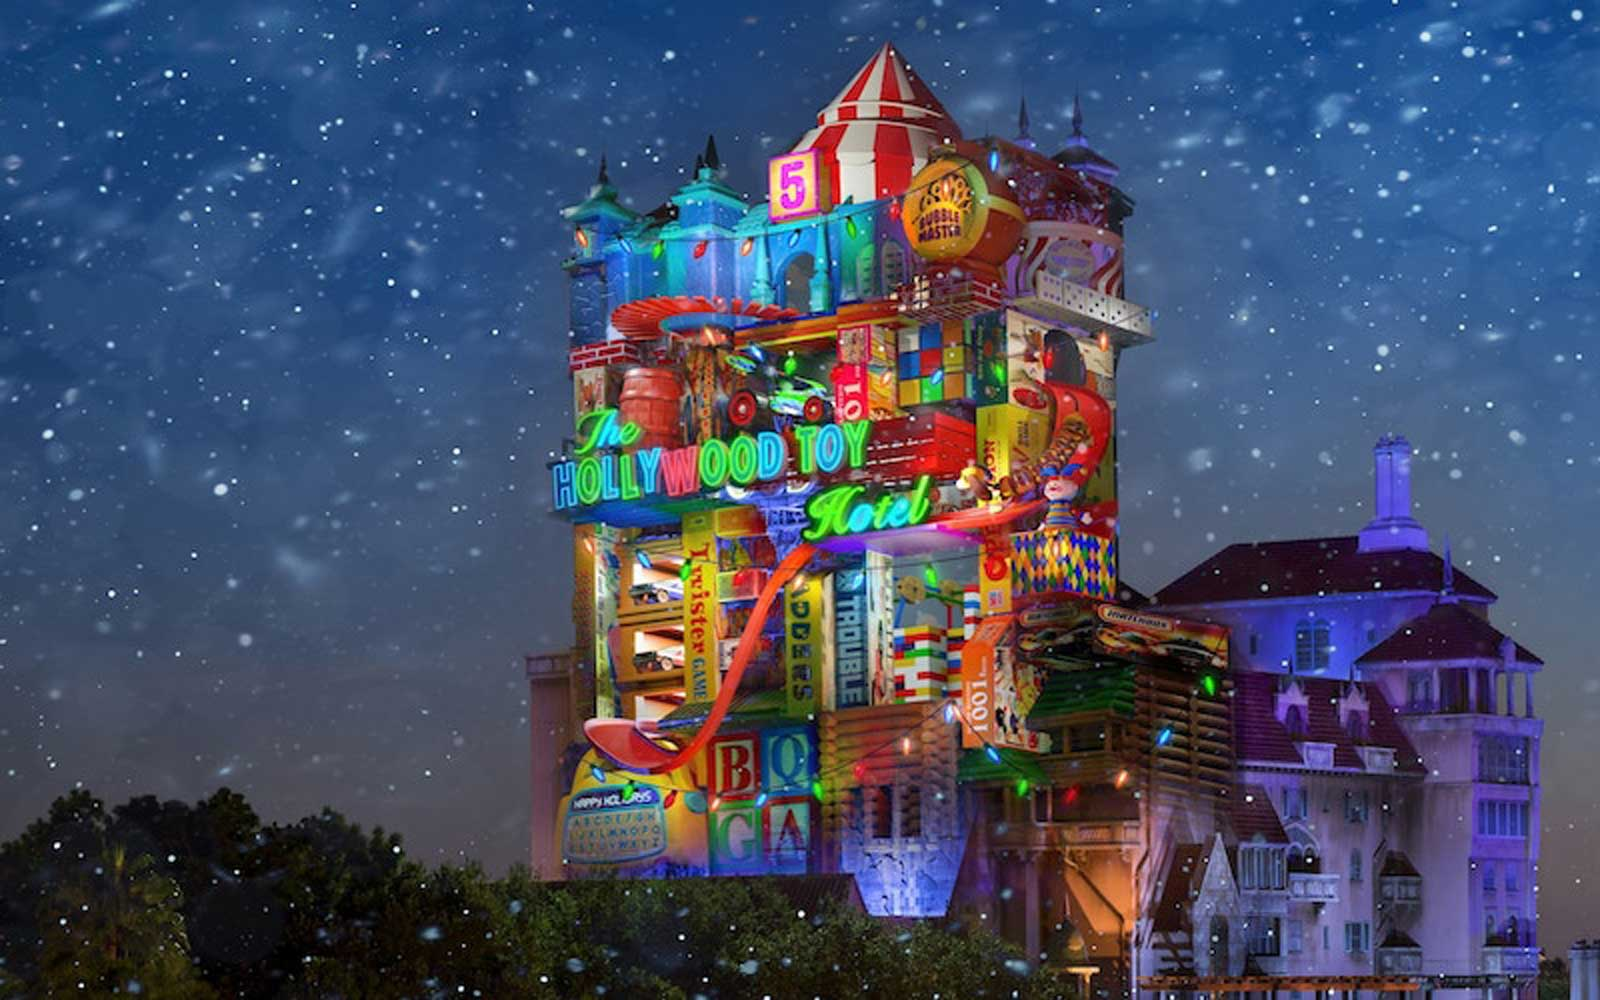 Disney Just Gave Us a Sneak Peek at the Tower of Terror's Huge Christmas Makeover